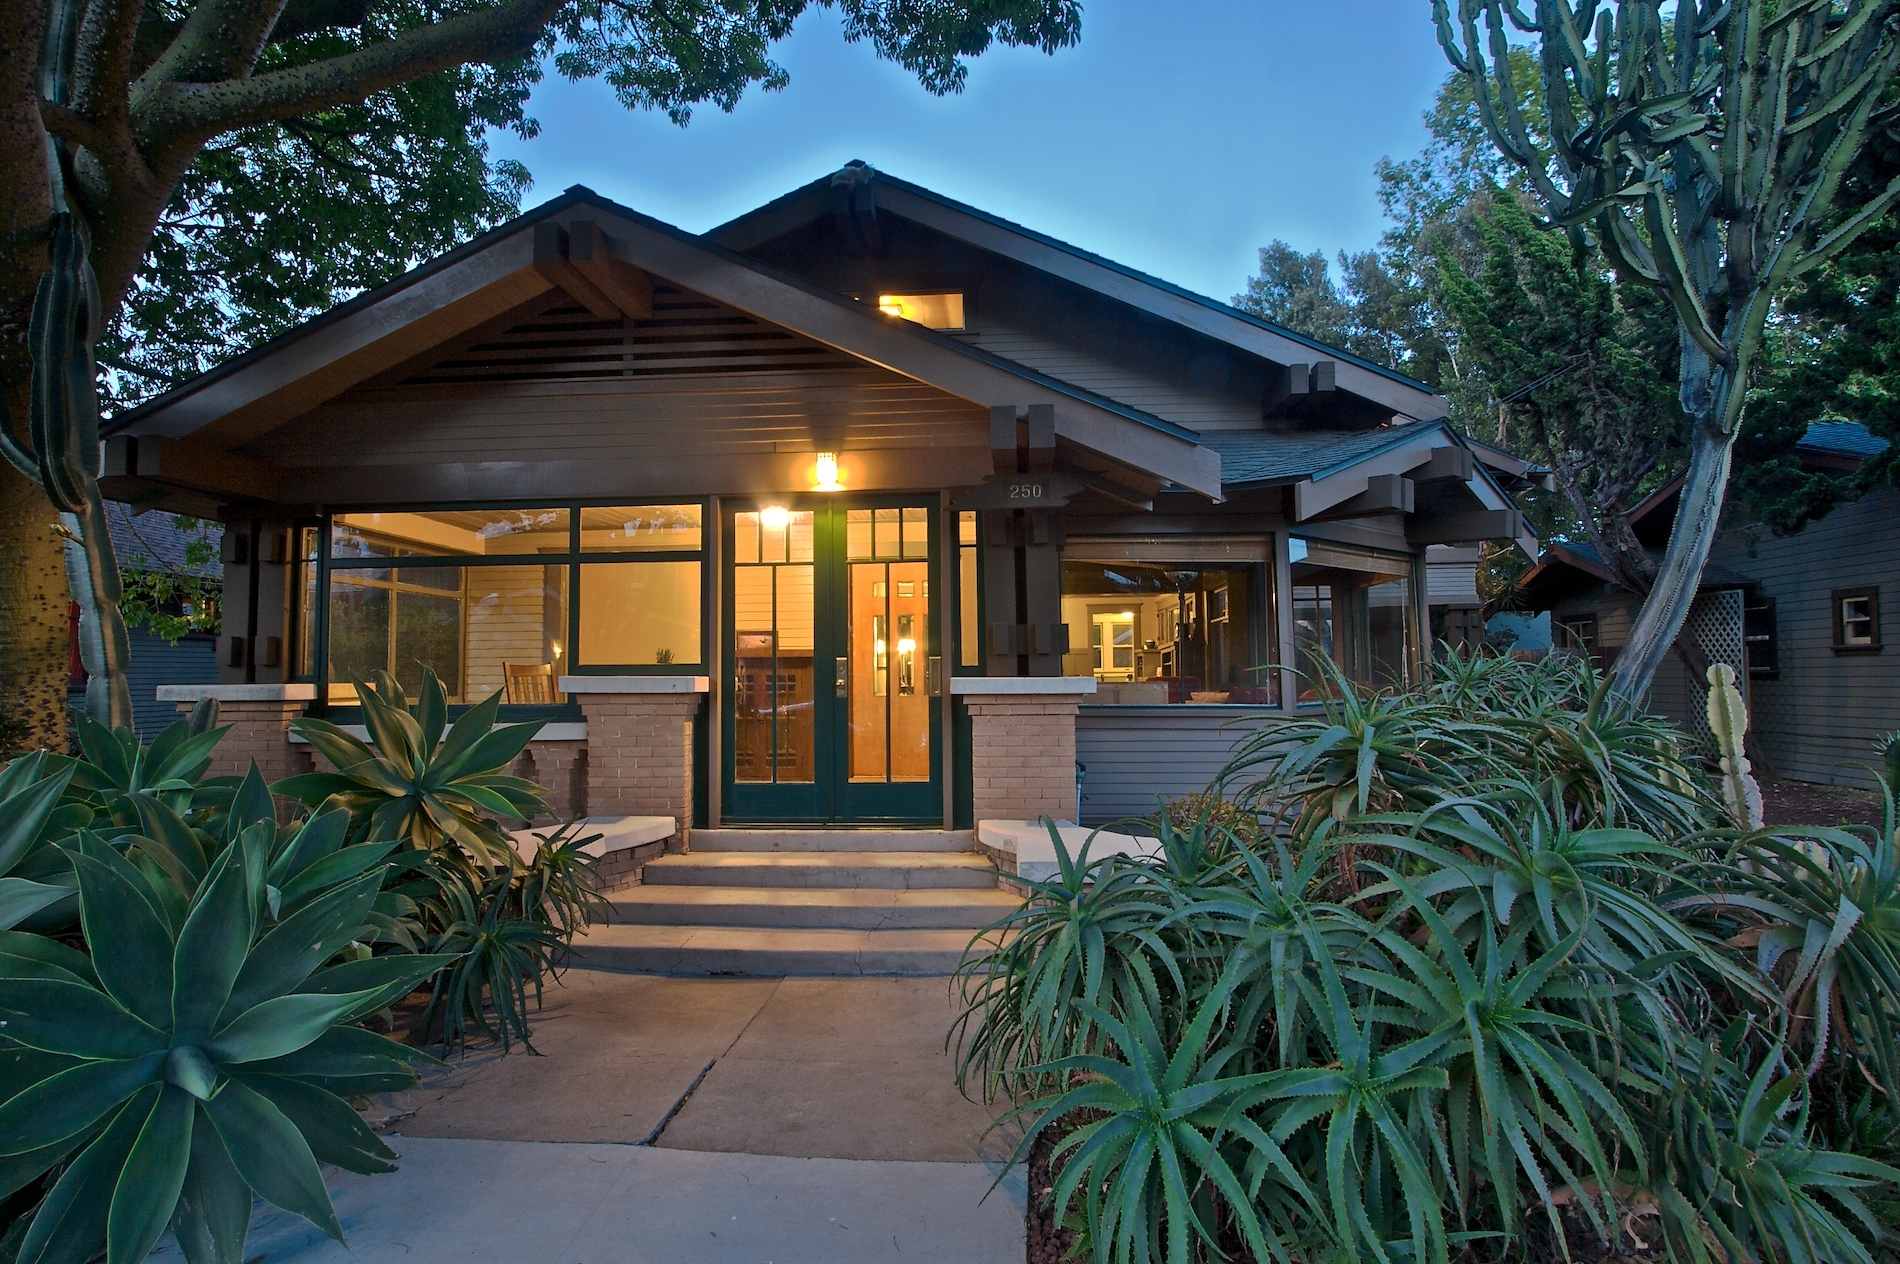 California craftsman bungalow style homes old style for California craftsman house plans